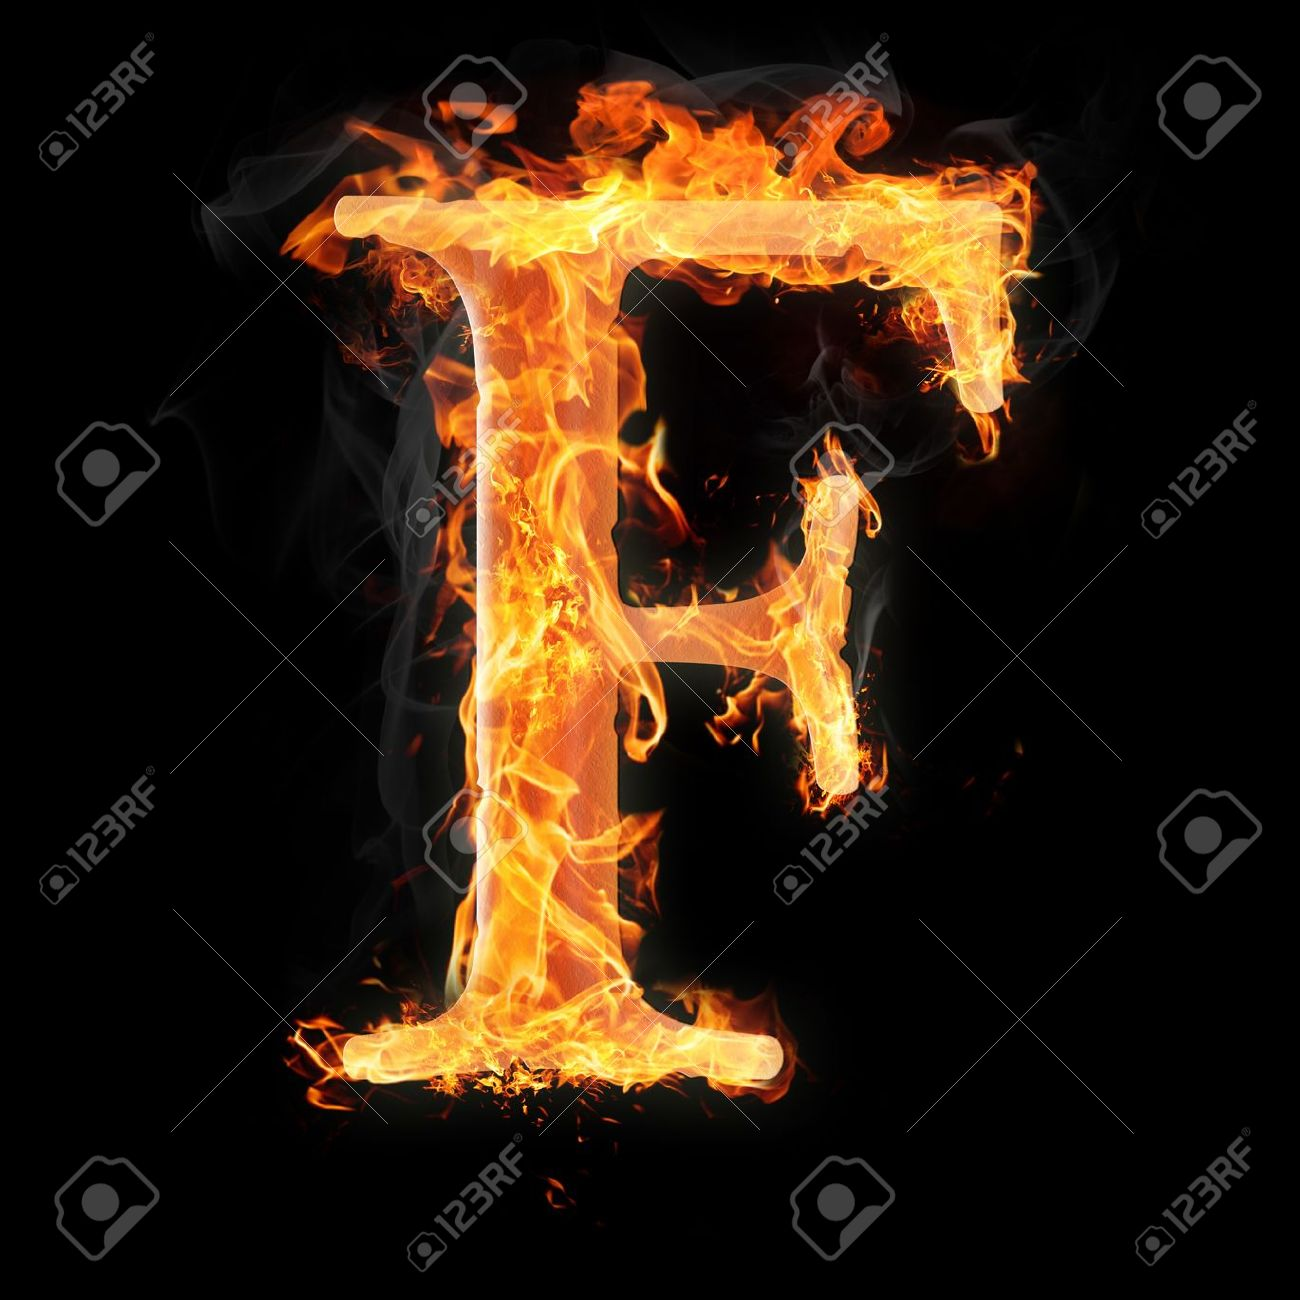 31c6ec832d3f6 Letters And Symbols In Fire - Letter F. Stock Photo, Picture And ...